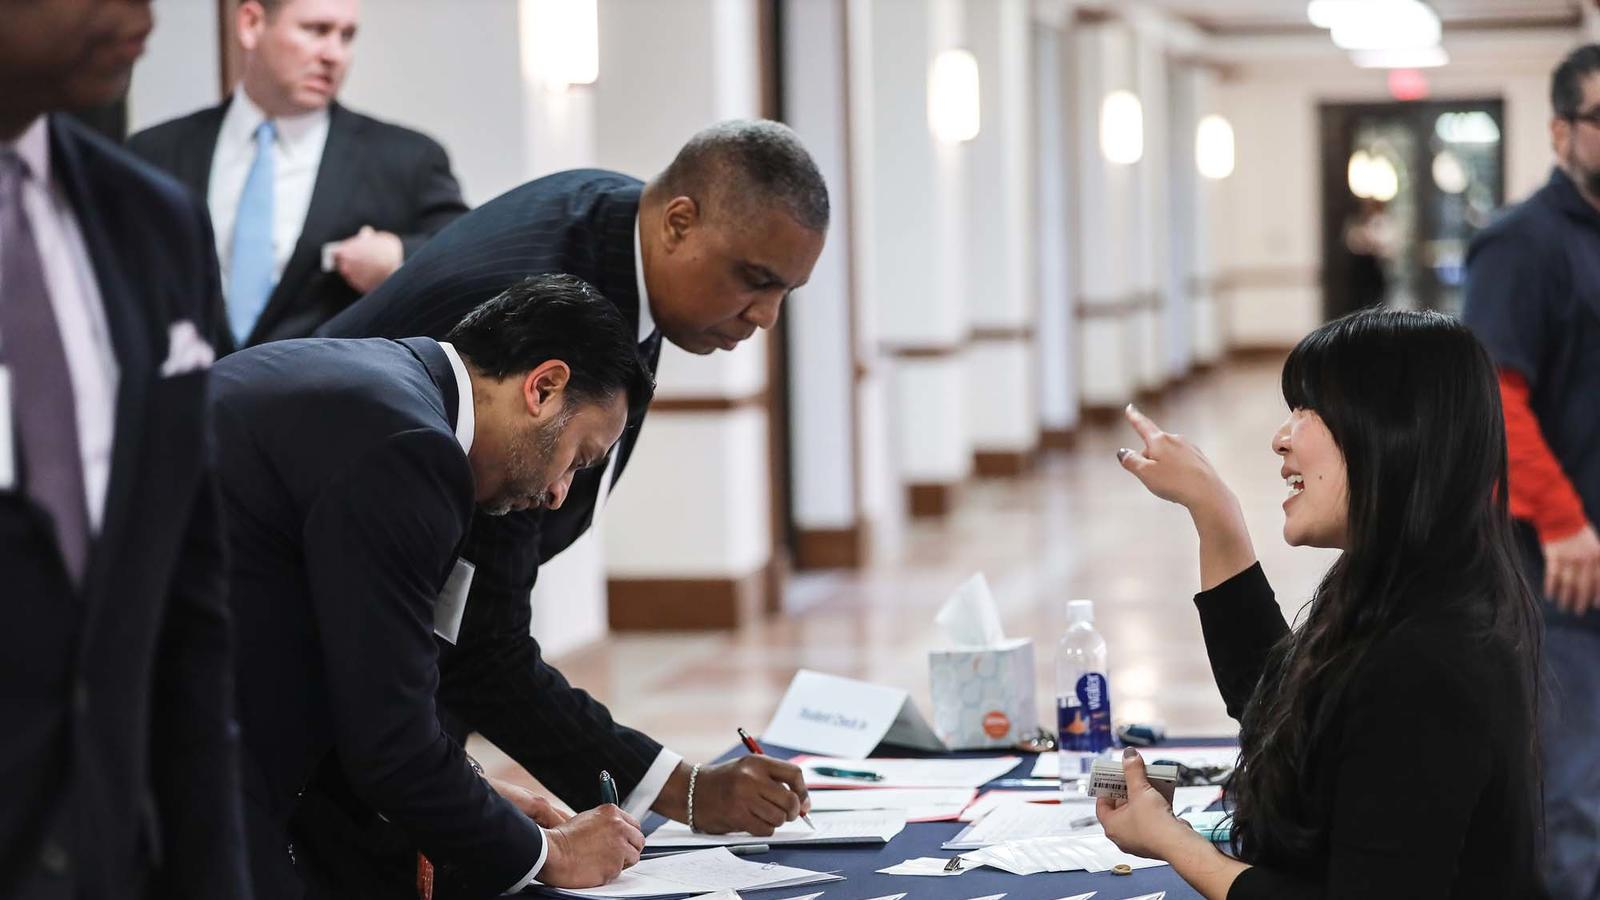 Recruiters signing into networking event